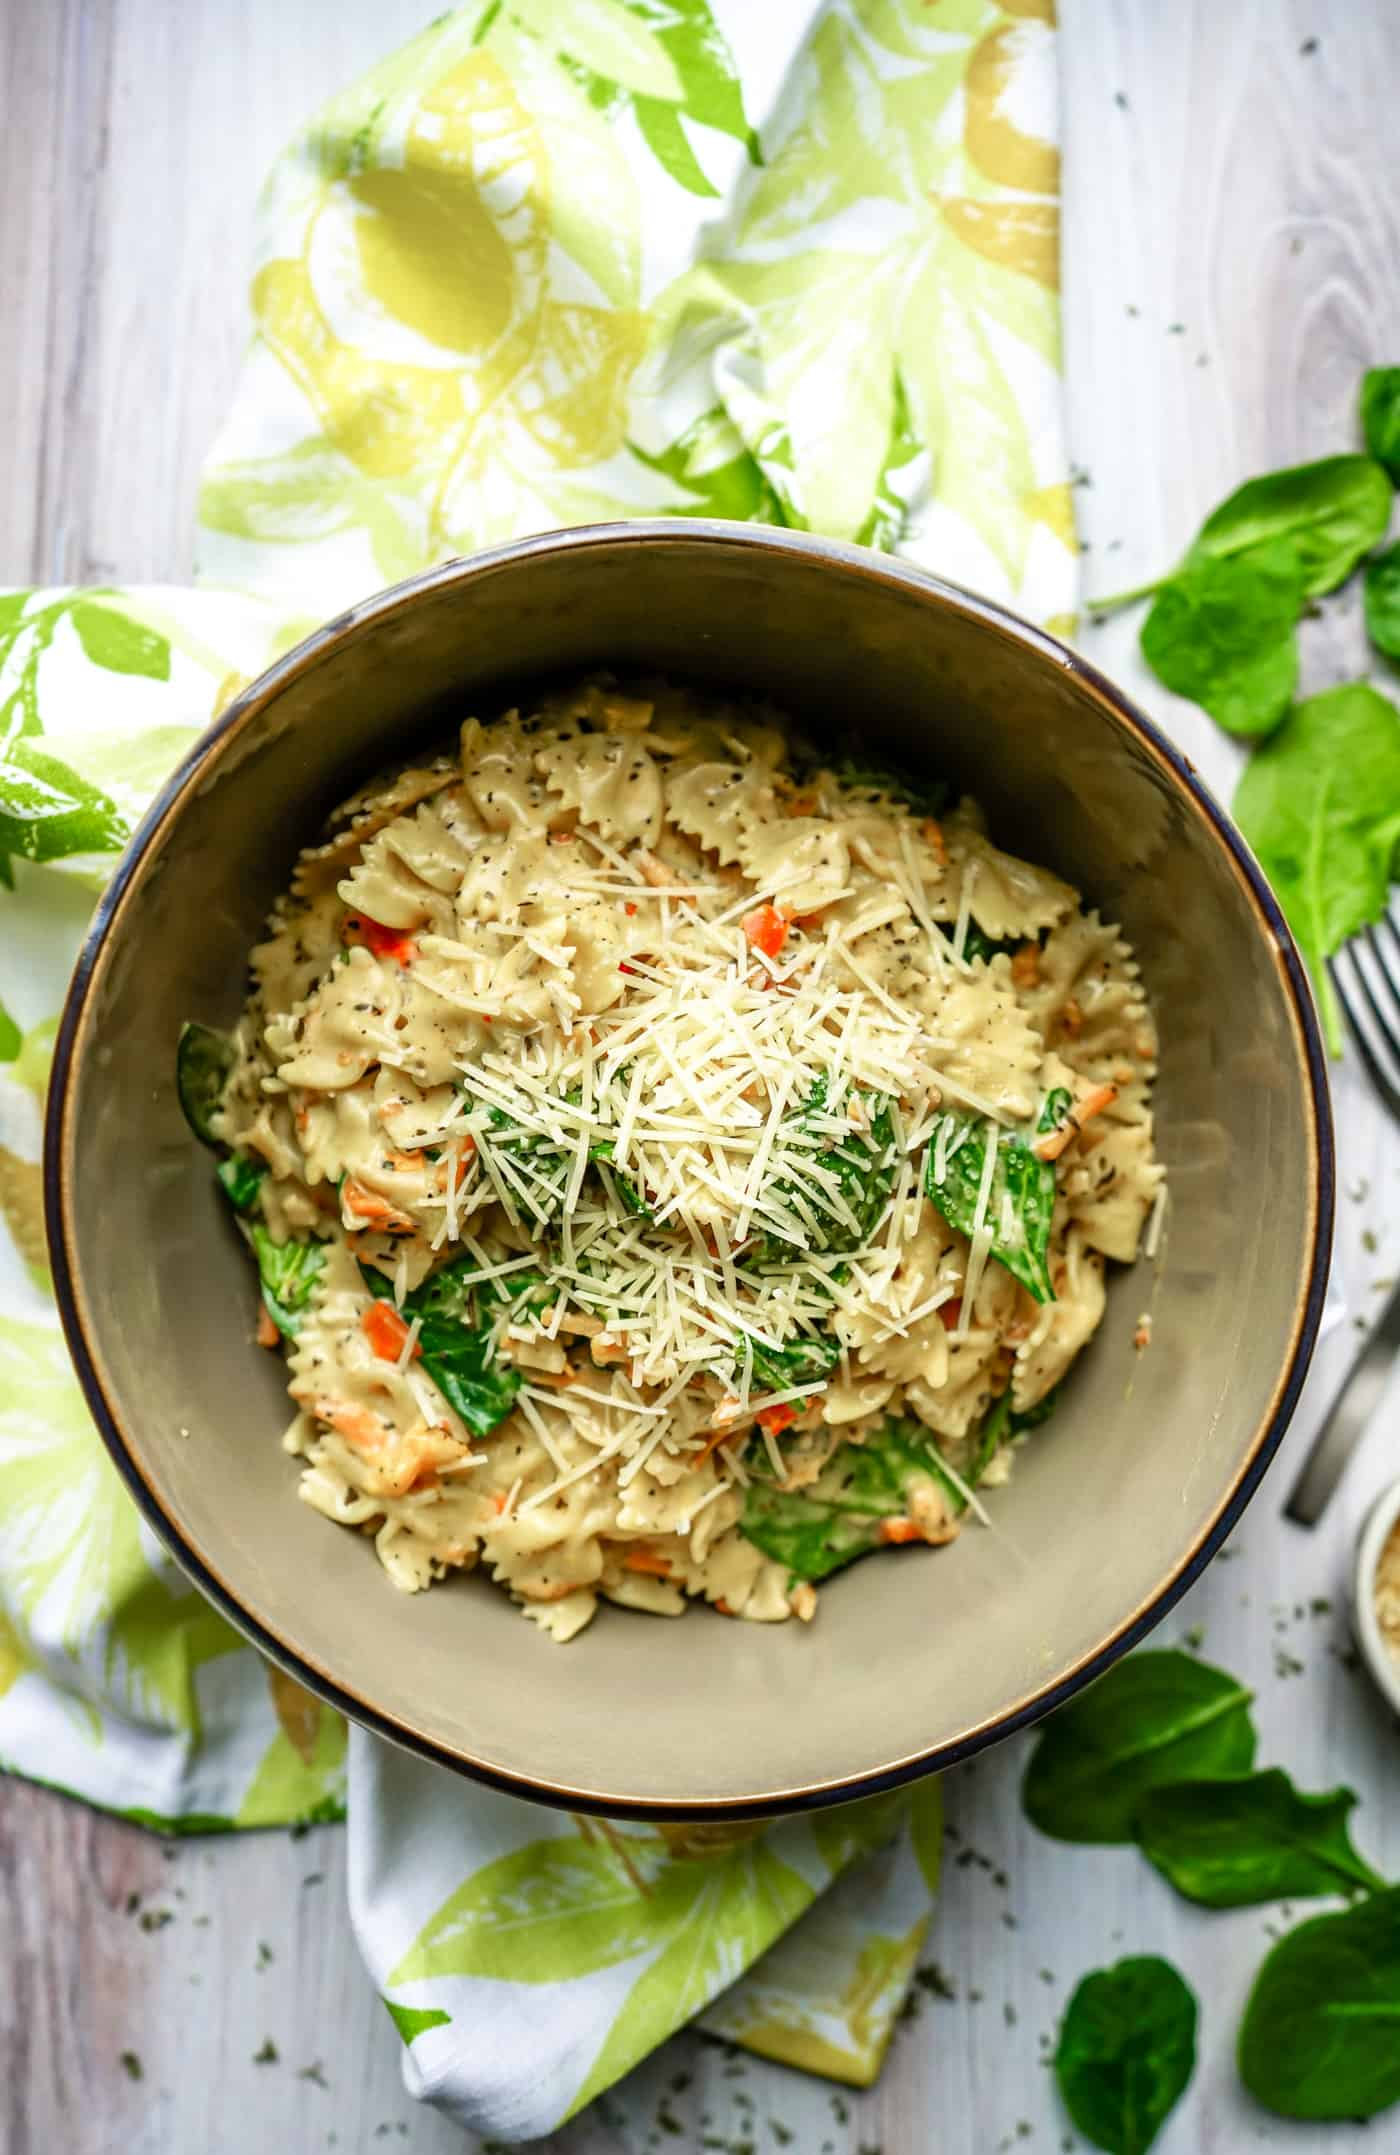 What better way to get in your veggies than with this delicious, keto-friendly and vegan Instant Pot Pasta Primavera. It's the perfect dinner tonight! Give it a try and let us know what you think!